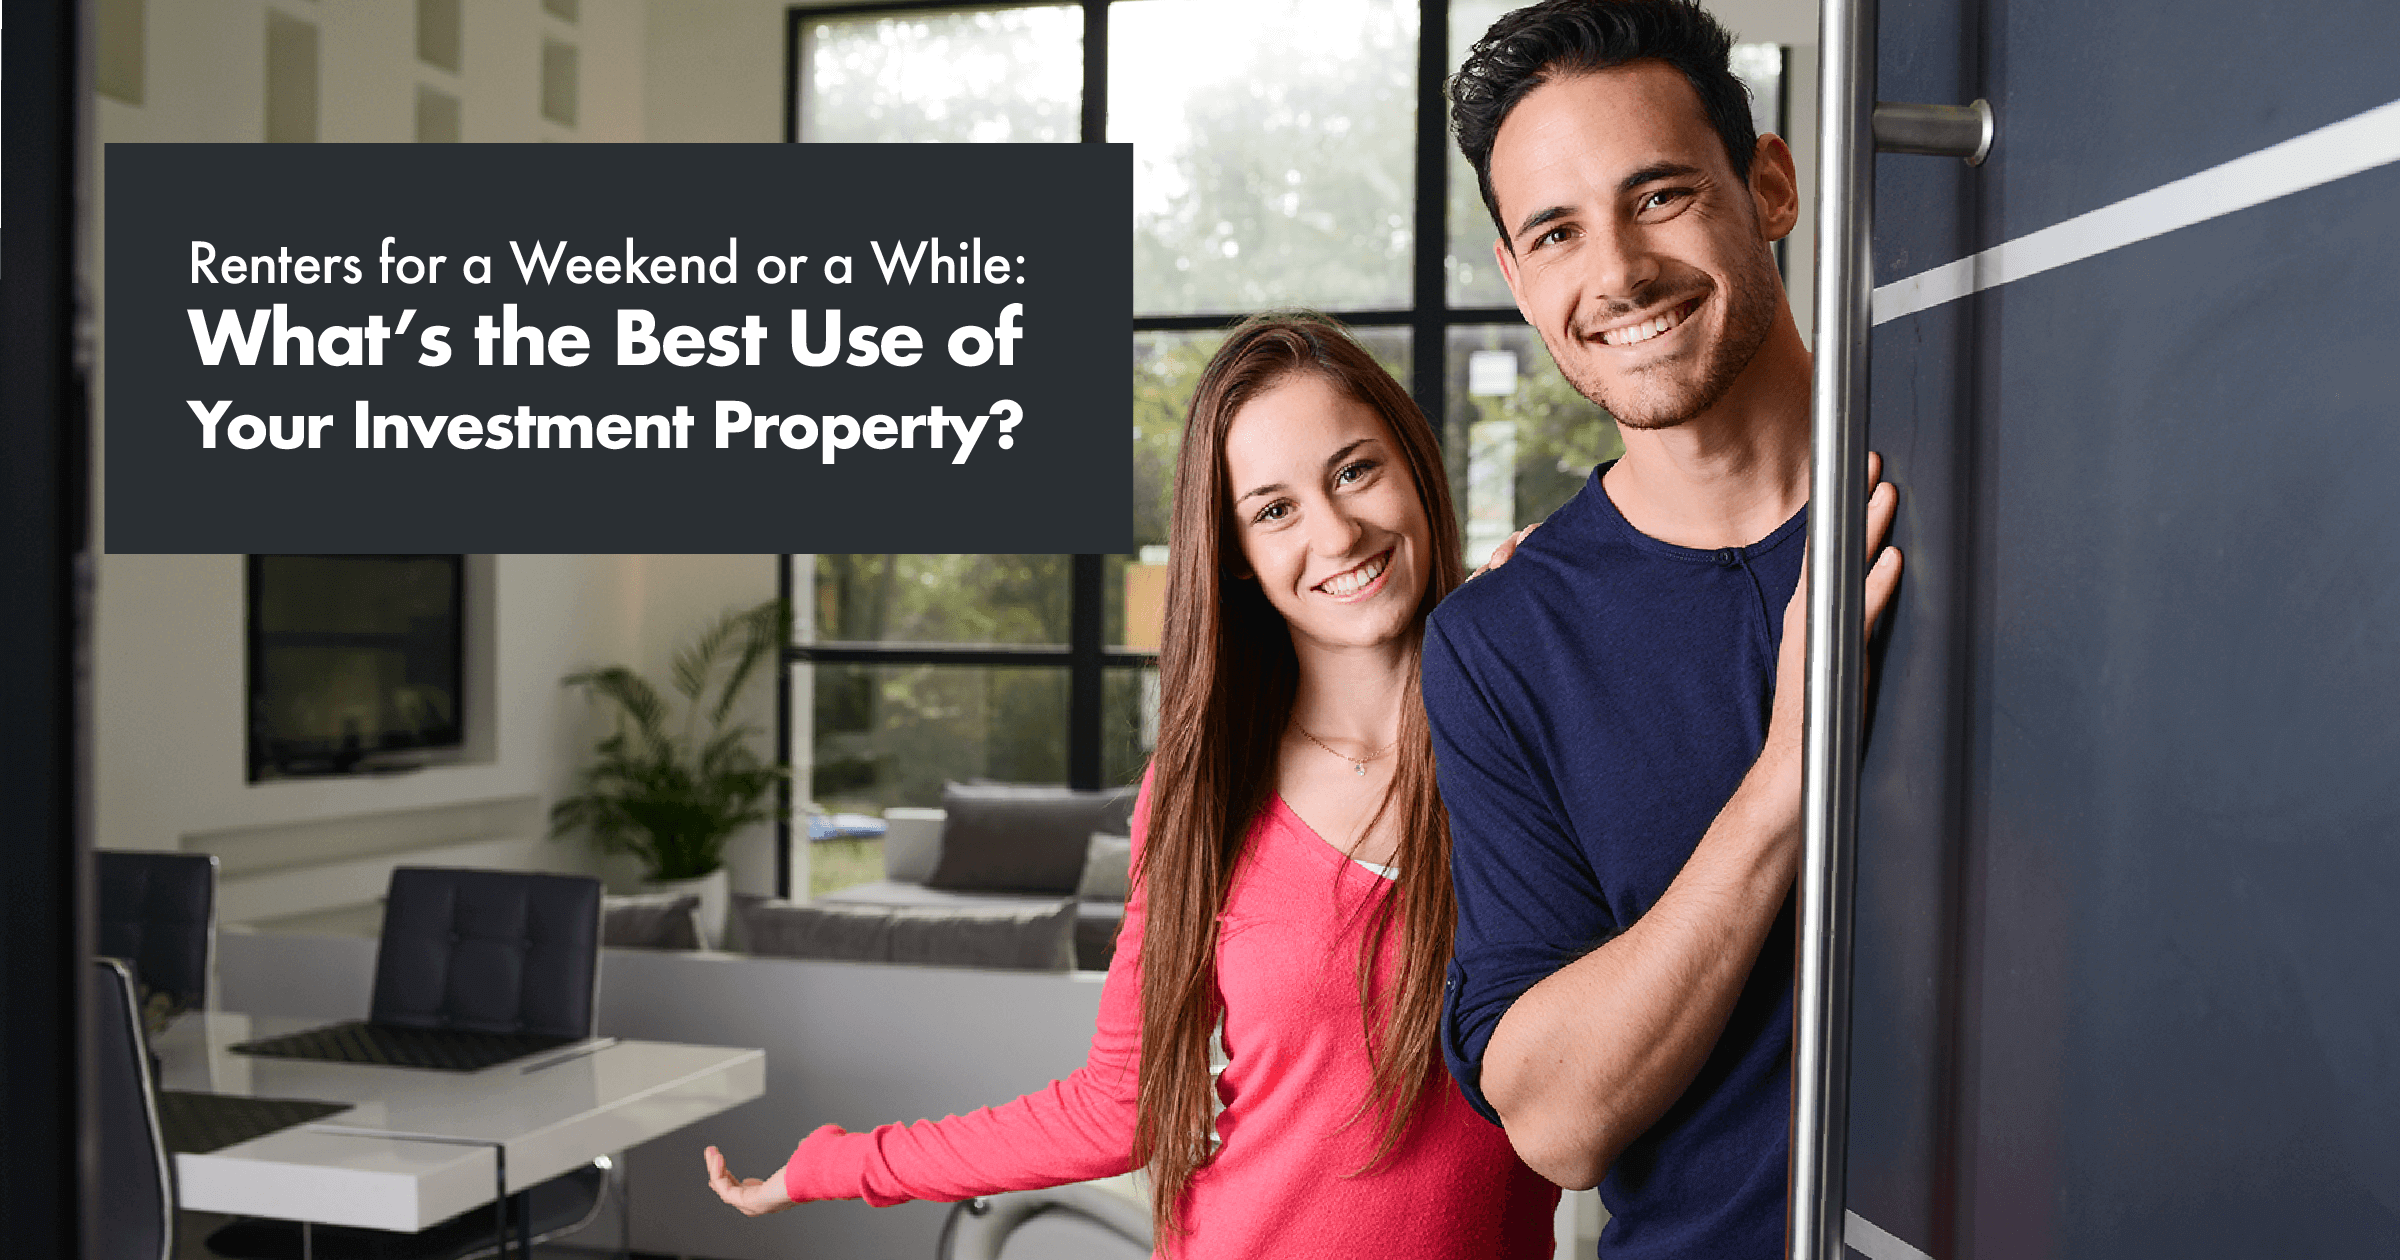 What's the Best Use of Your Investment Property?